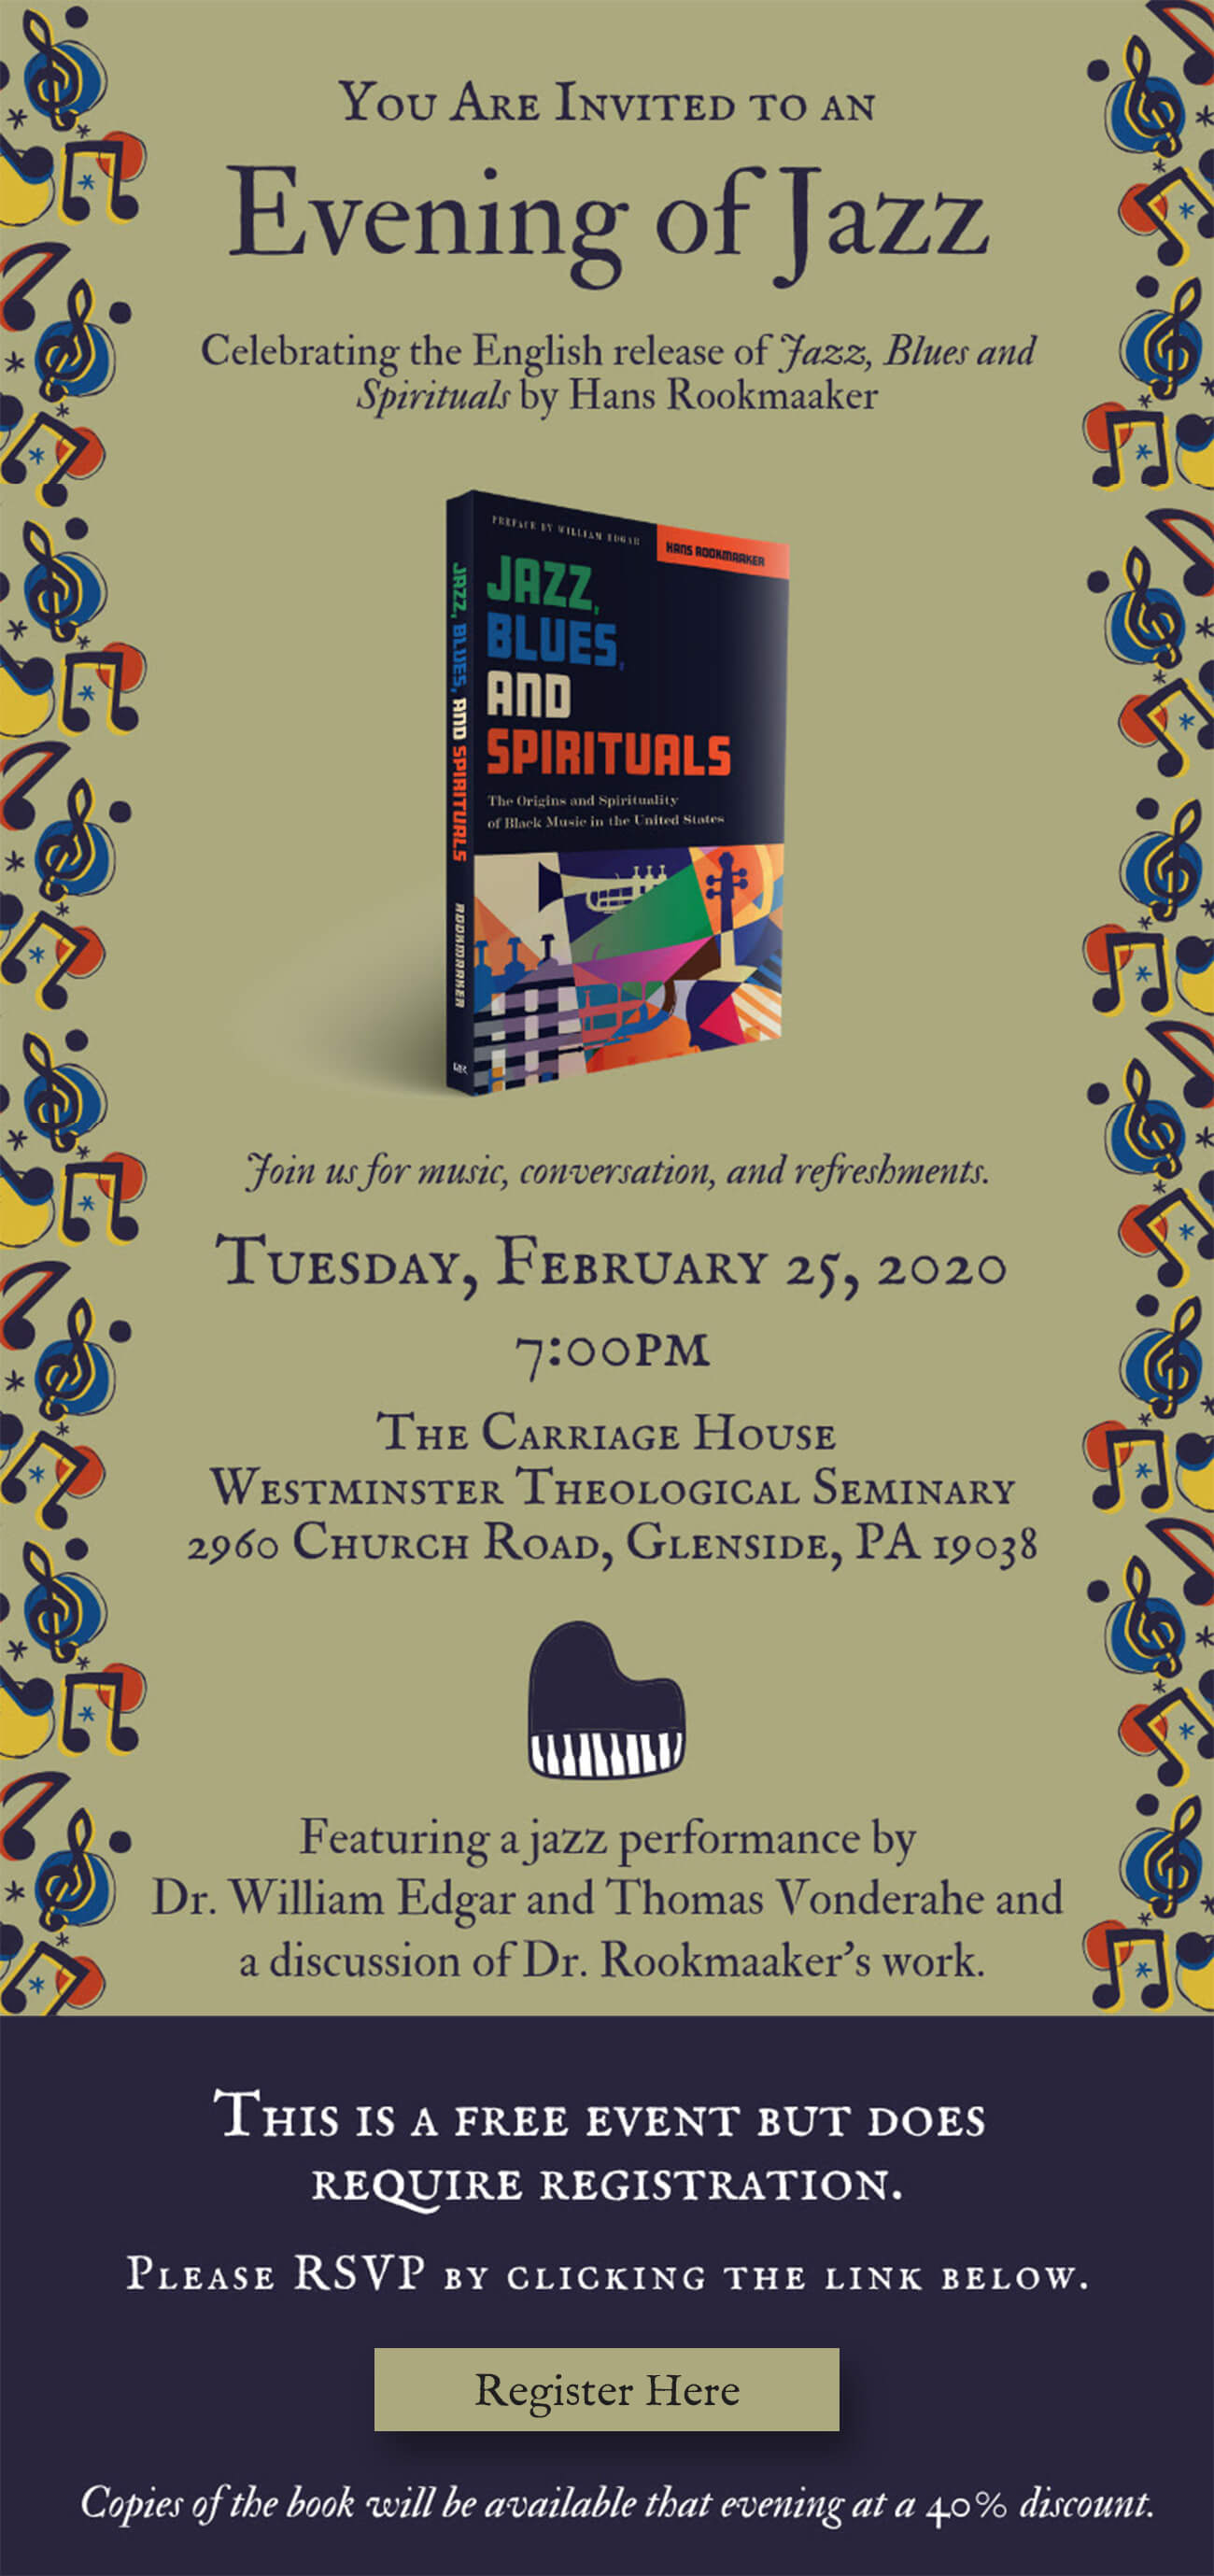 Jazz, Blues, and Spirituals event invite